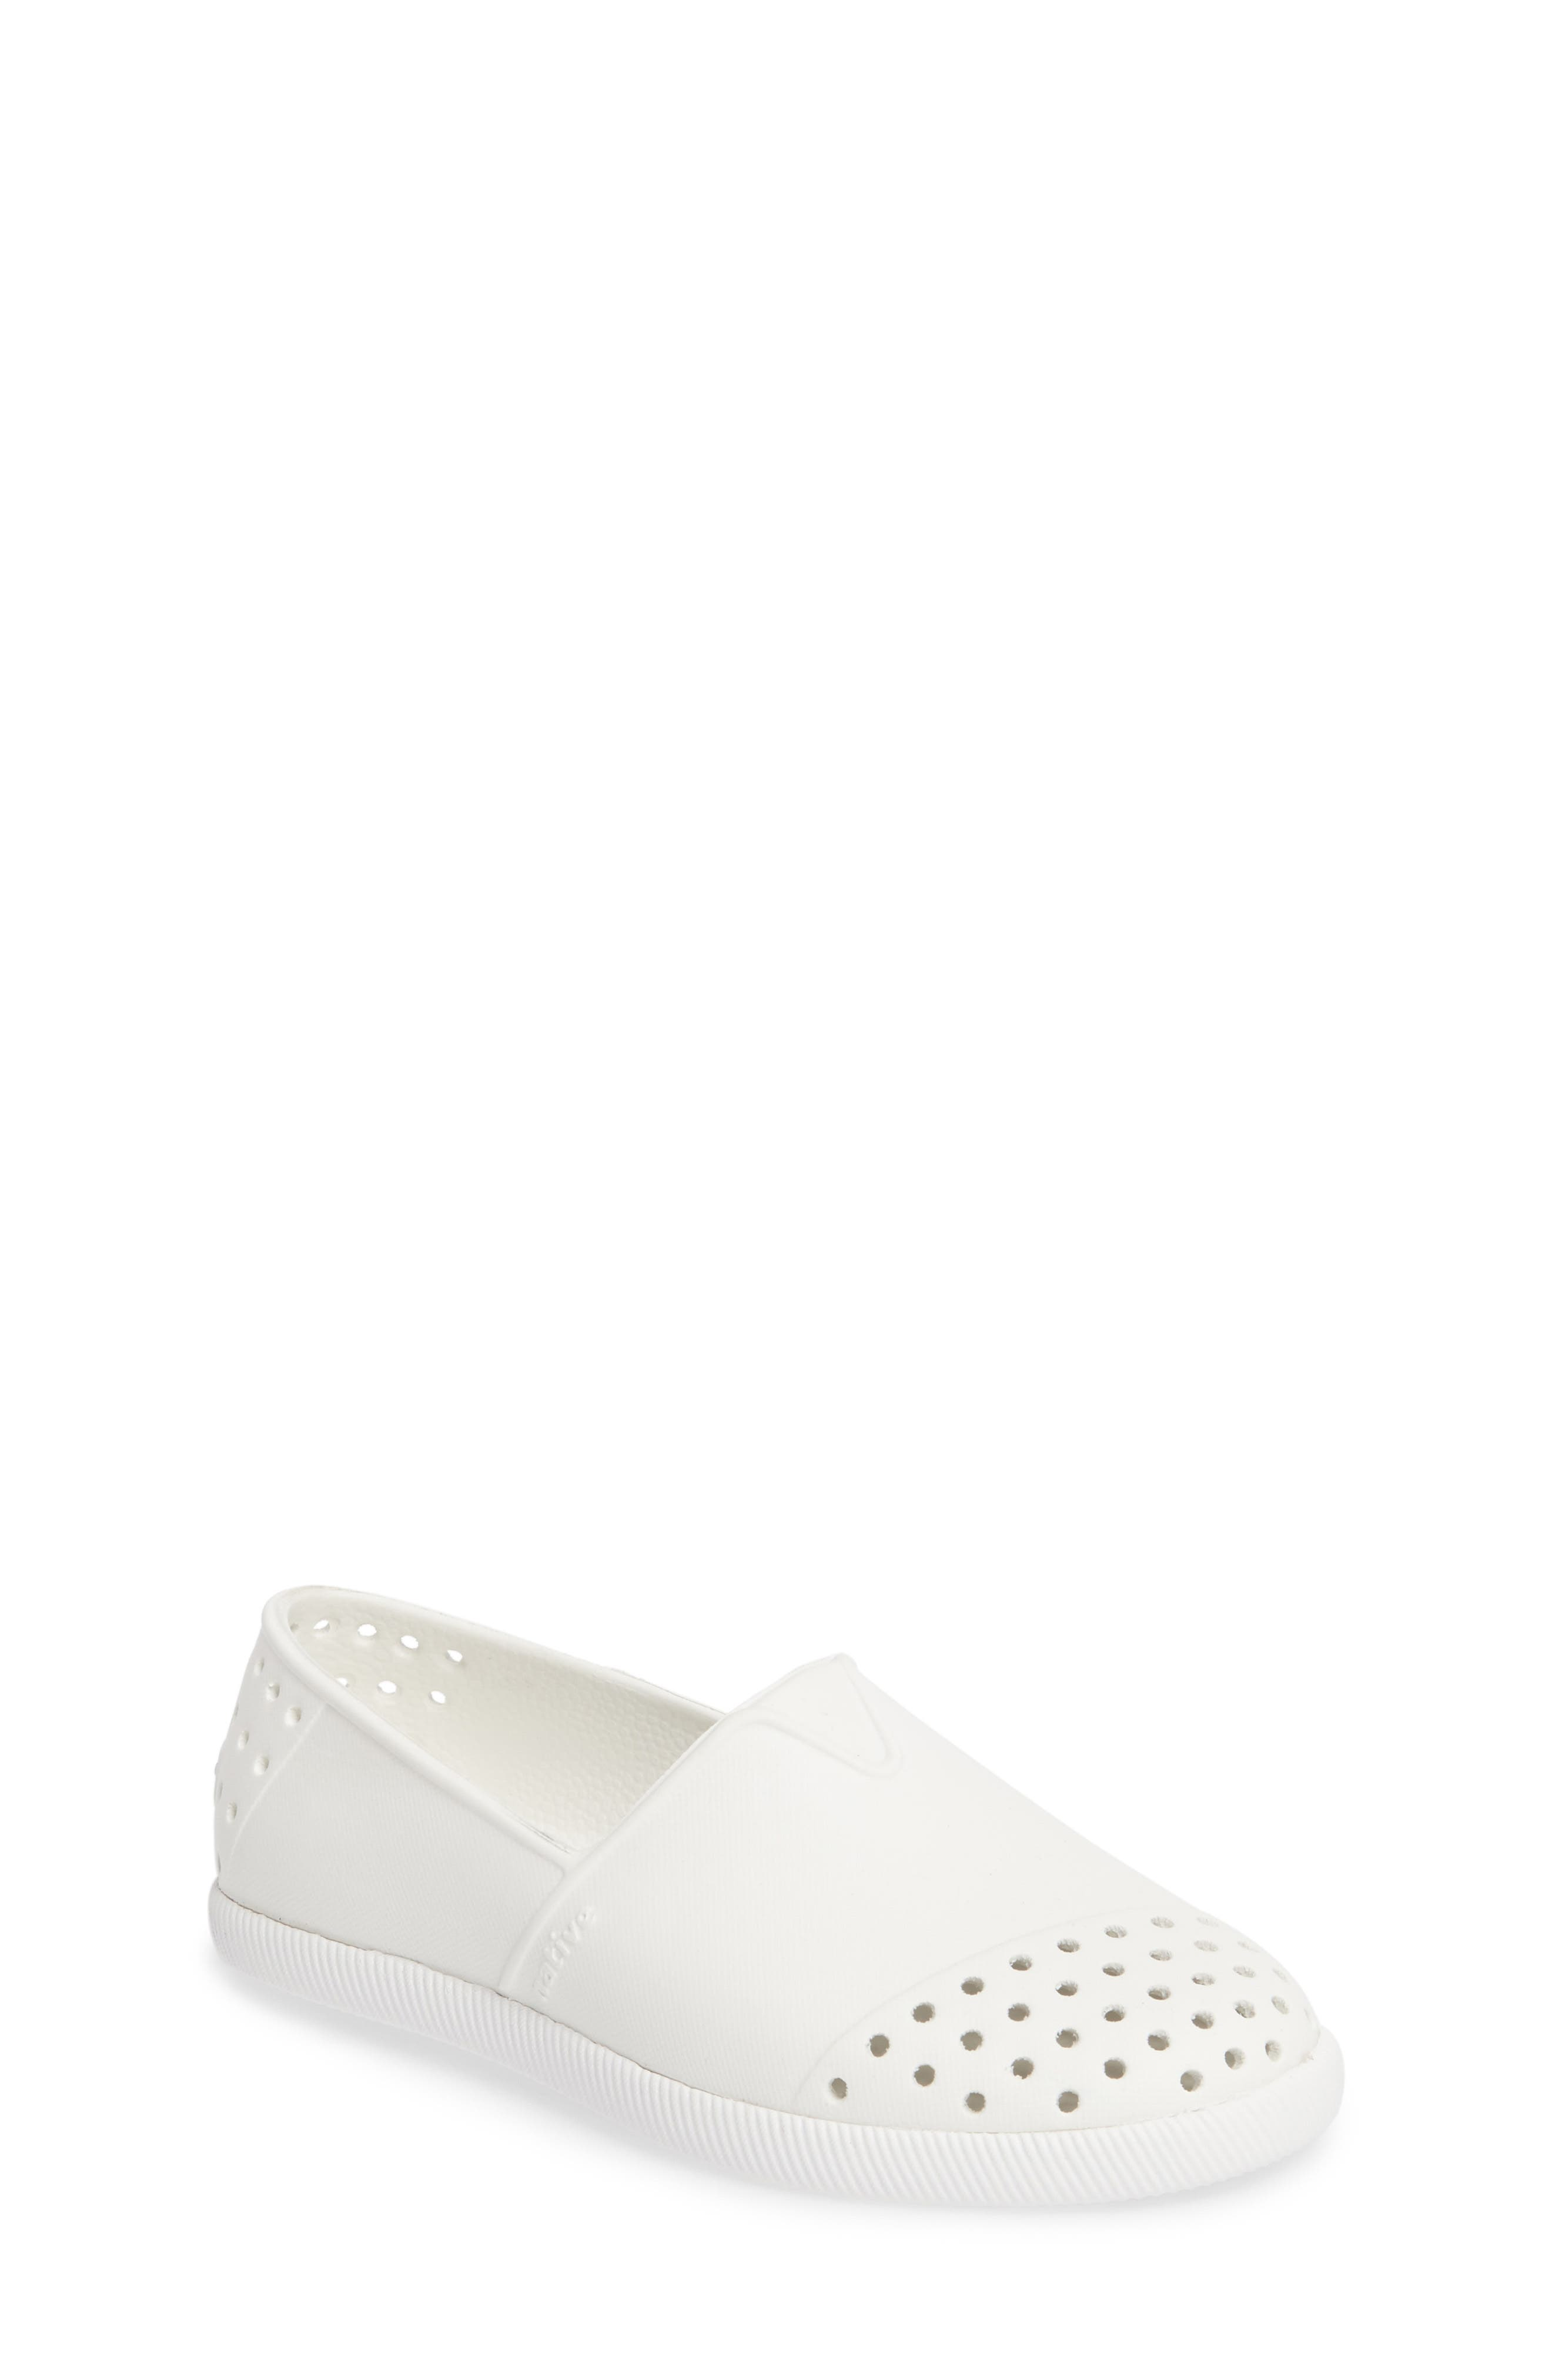 Native Shoes Verona Perforated Slip-On (Baby, Walker, Toddler & Little Kid)